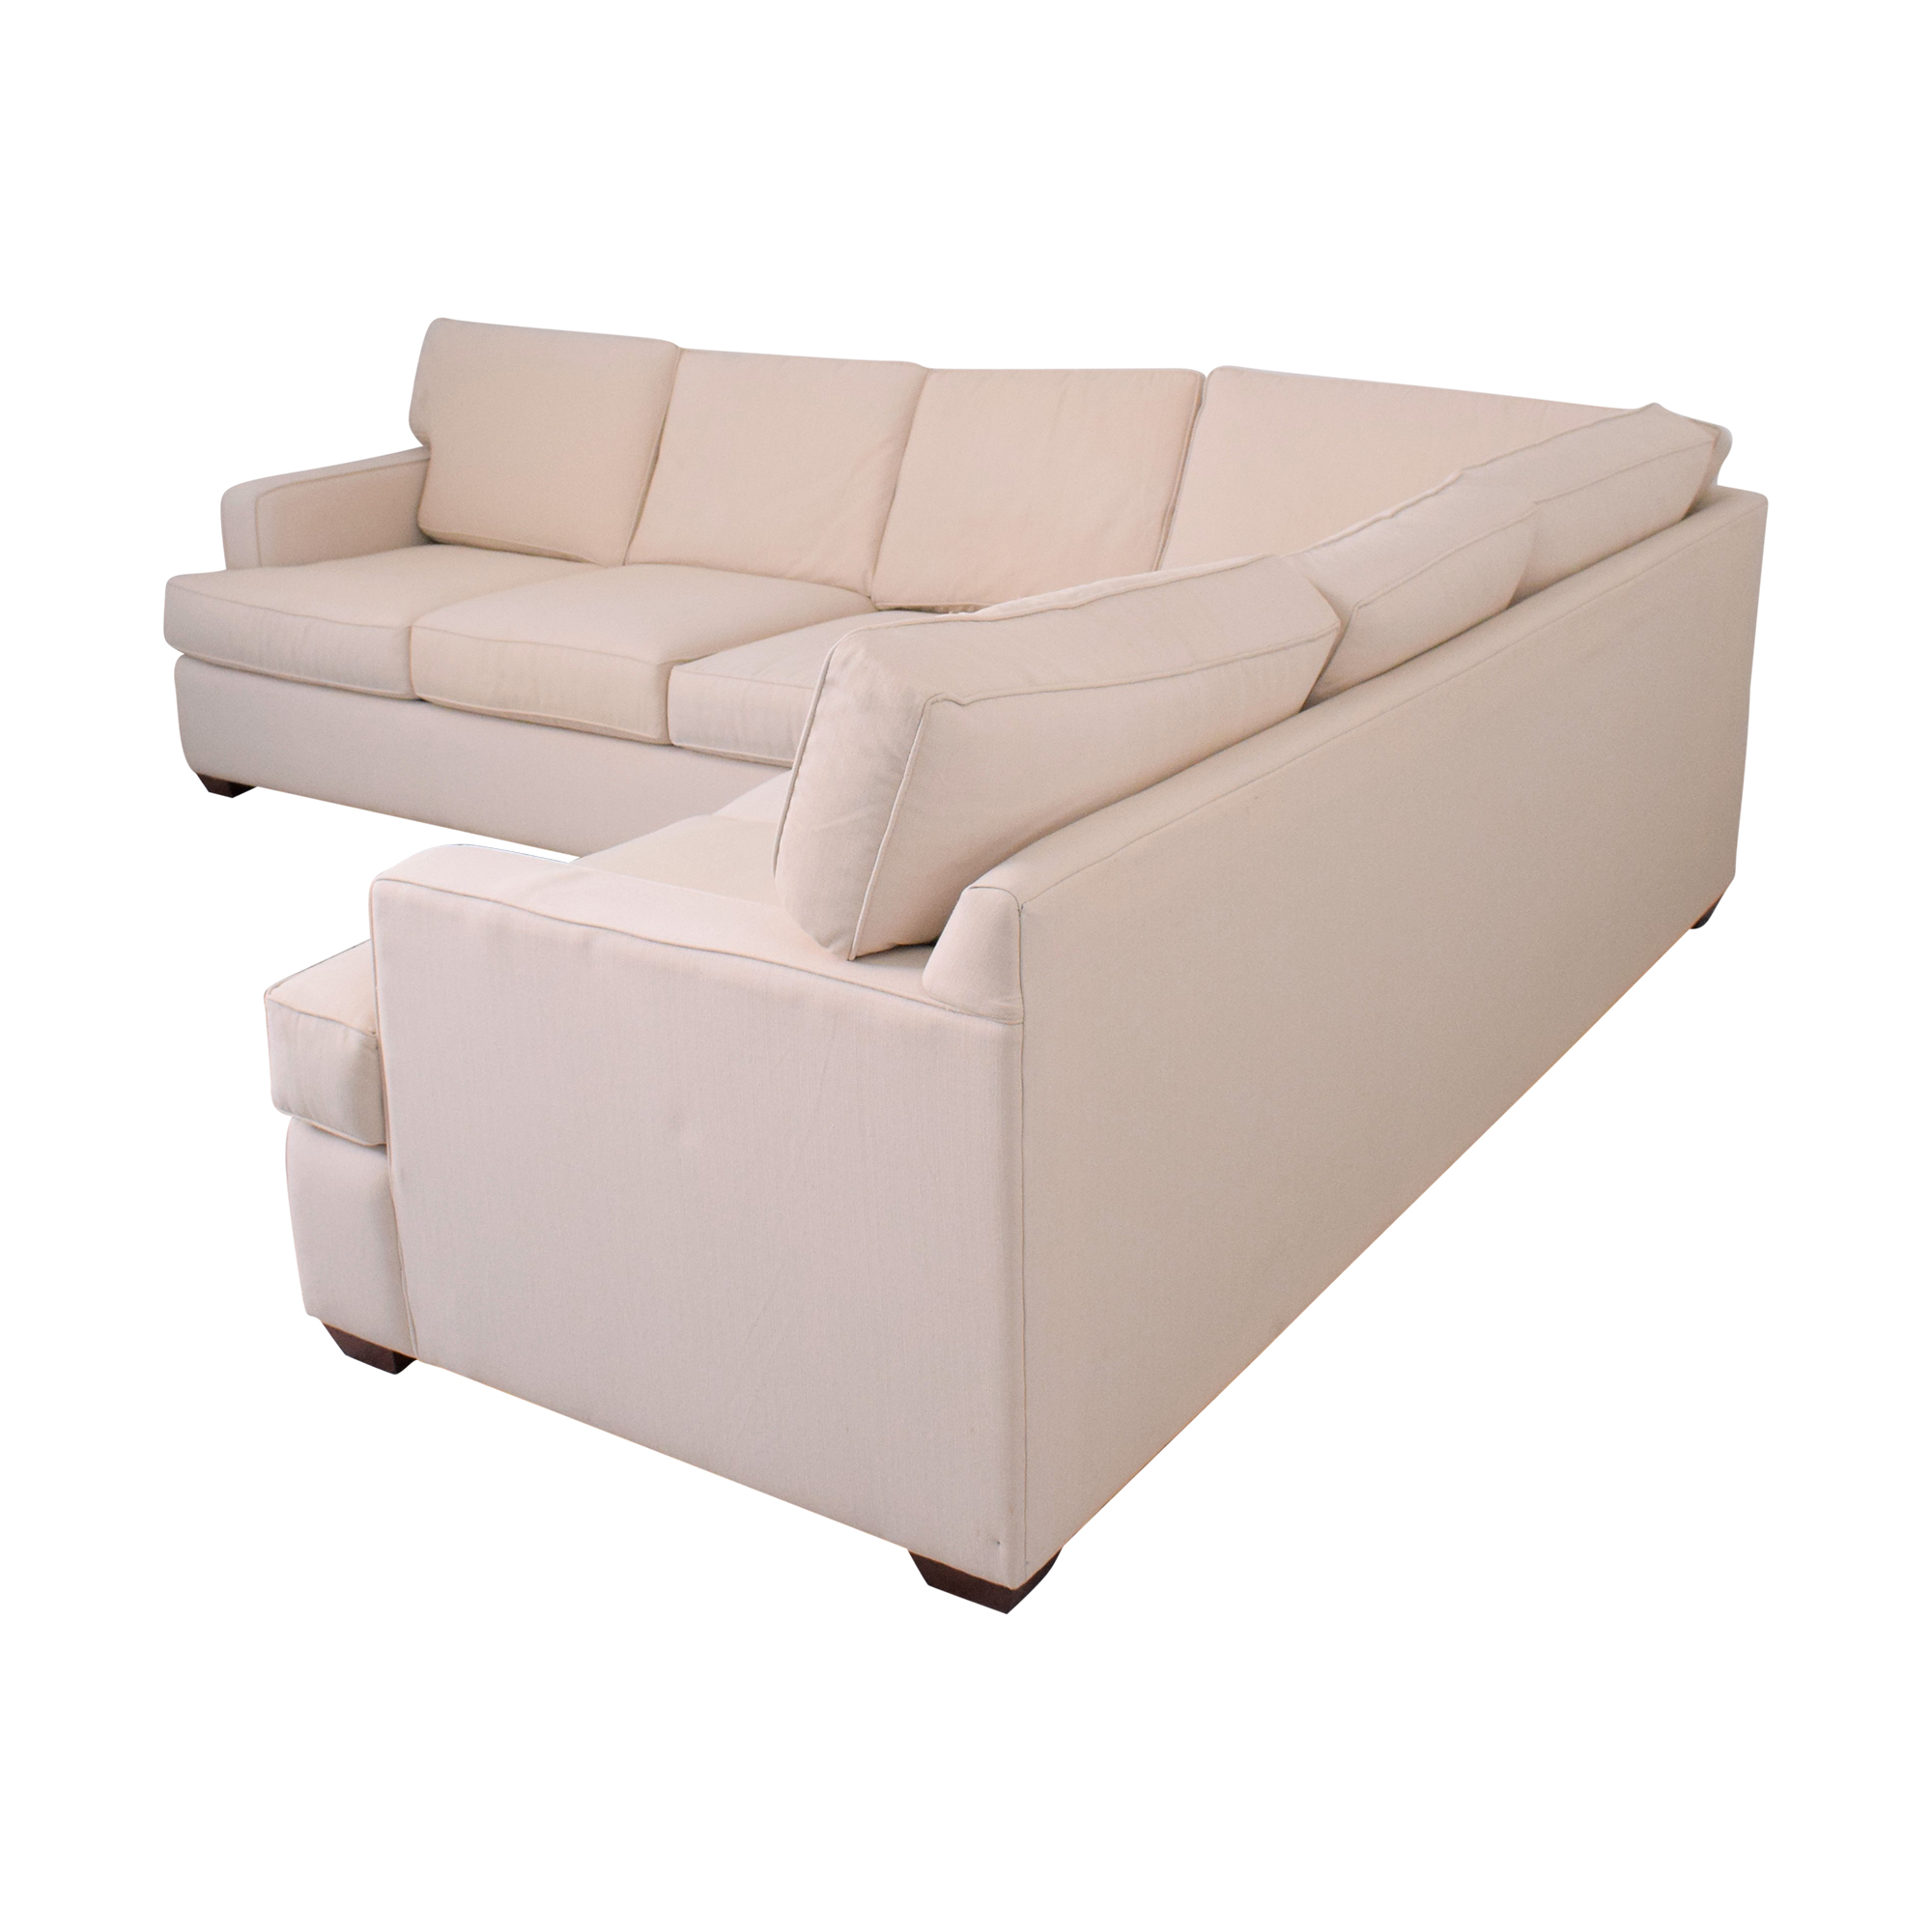 Klaussner Klaussner Loomis Sectional off white